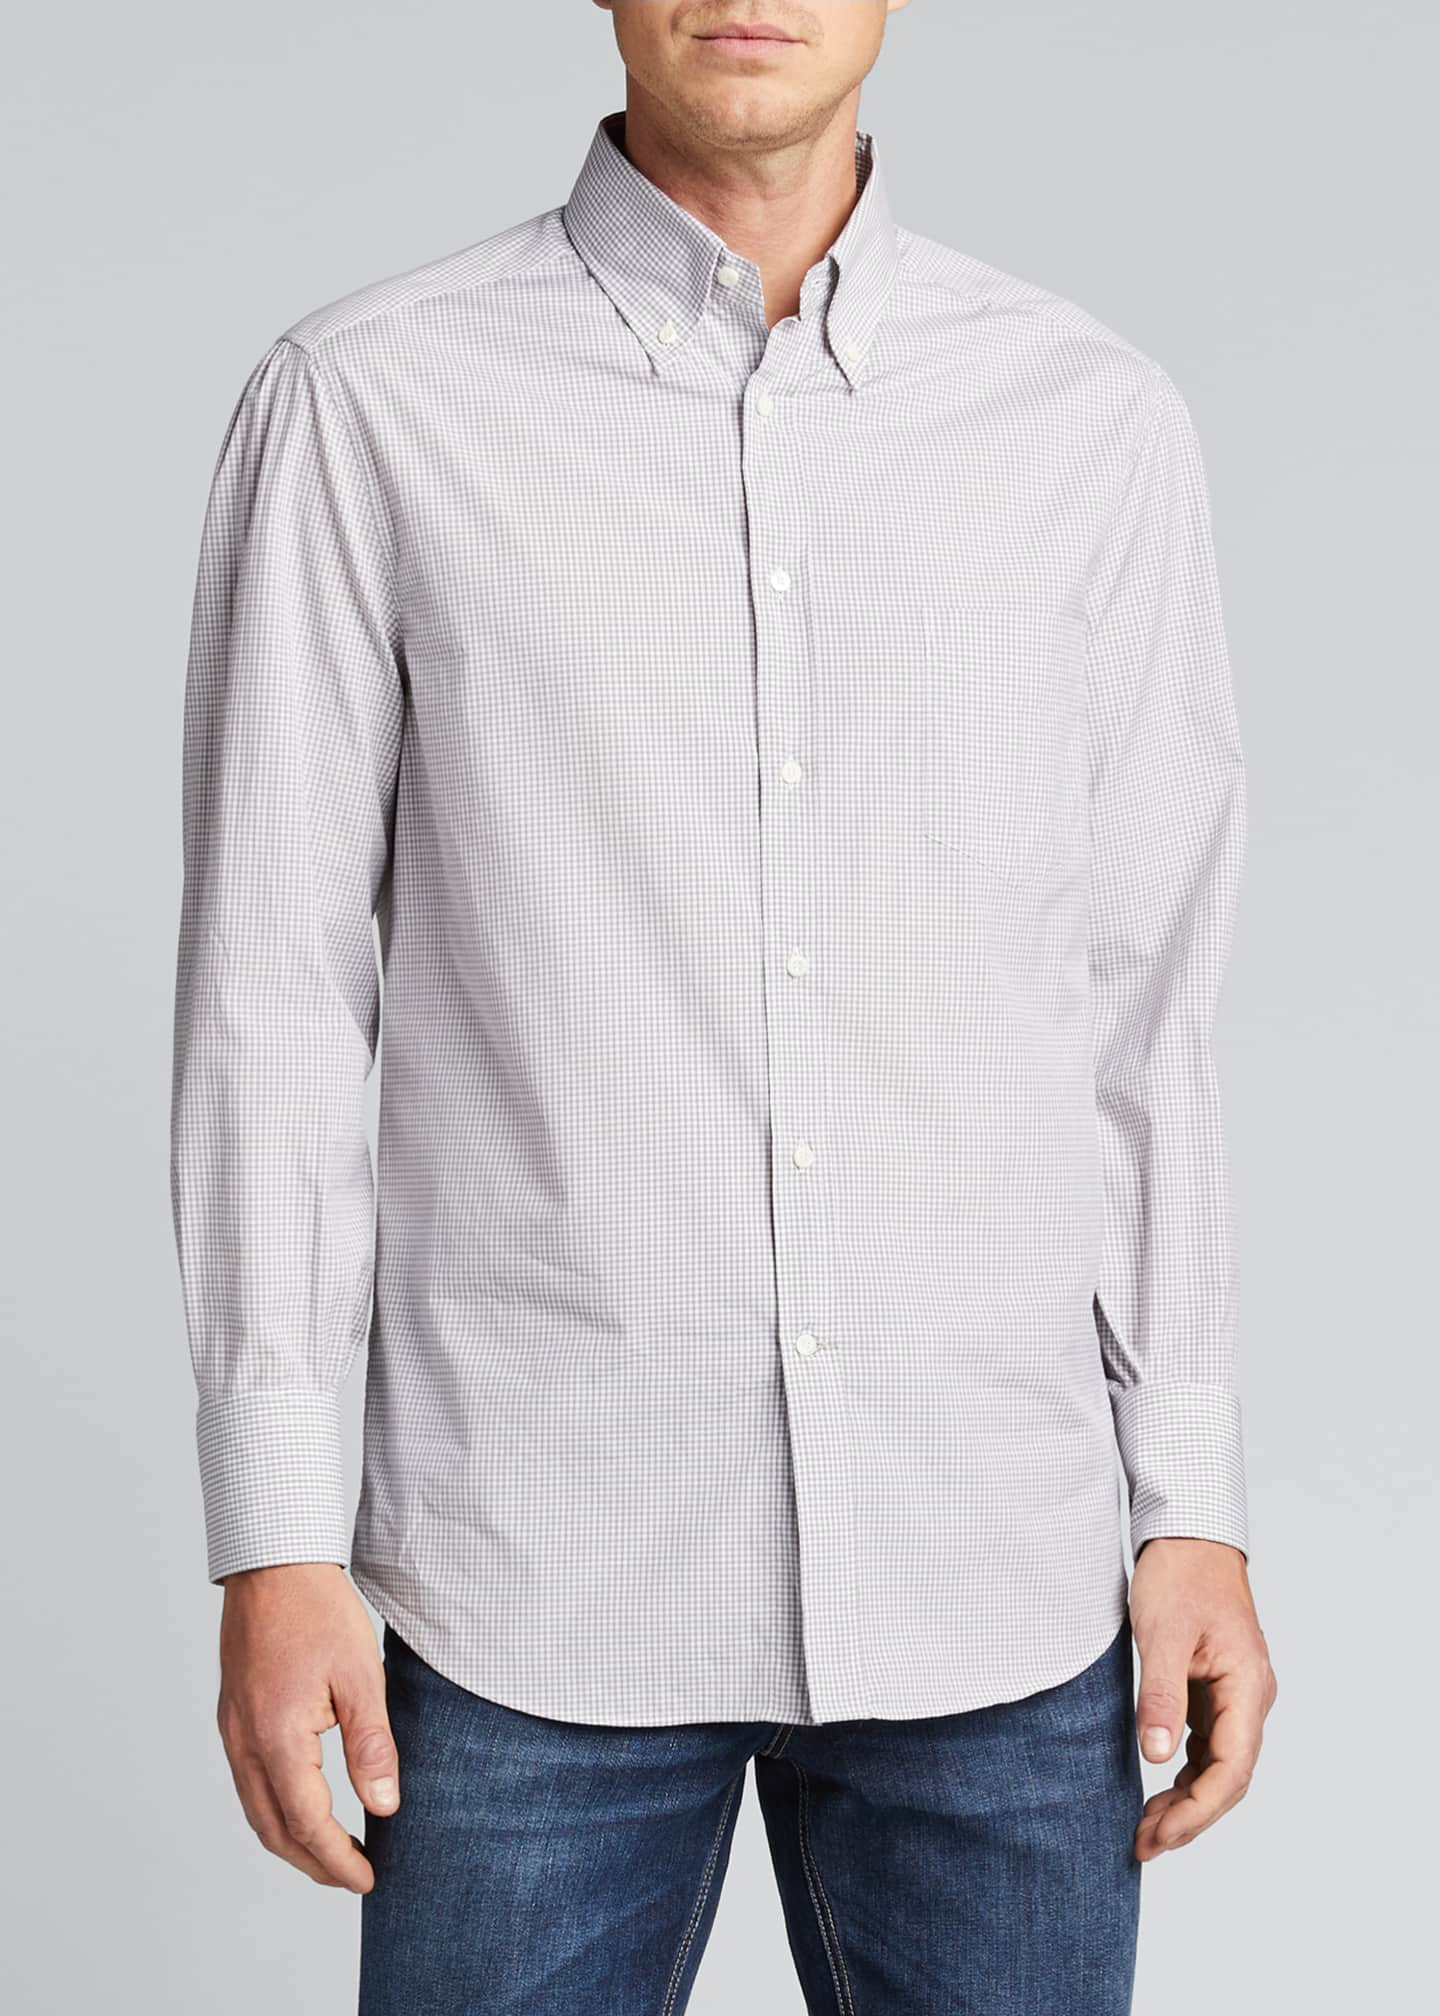 Image 3 of 5: Men's Micro-Check Sport Shirt